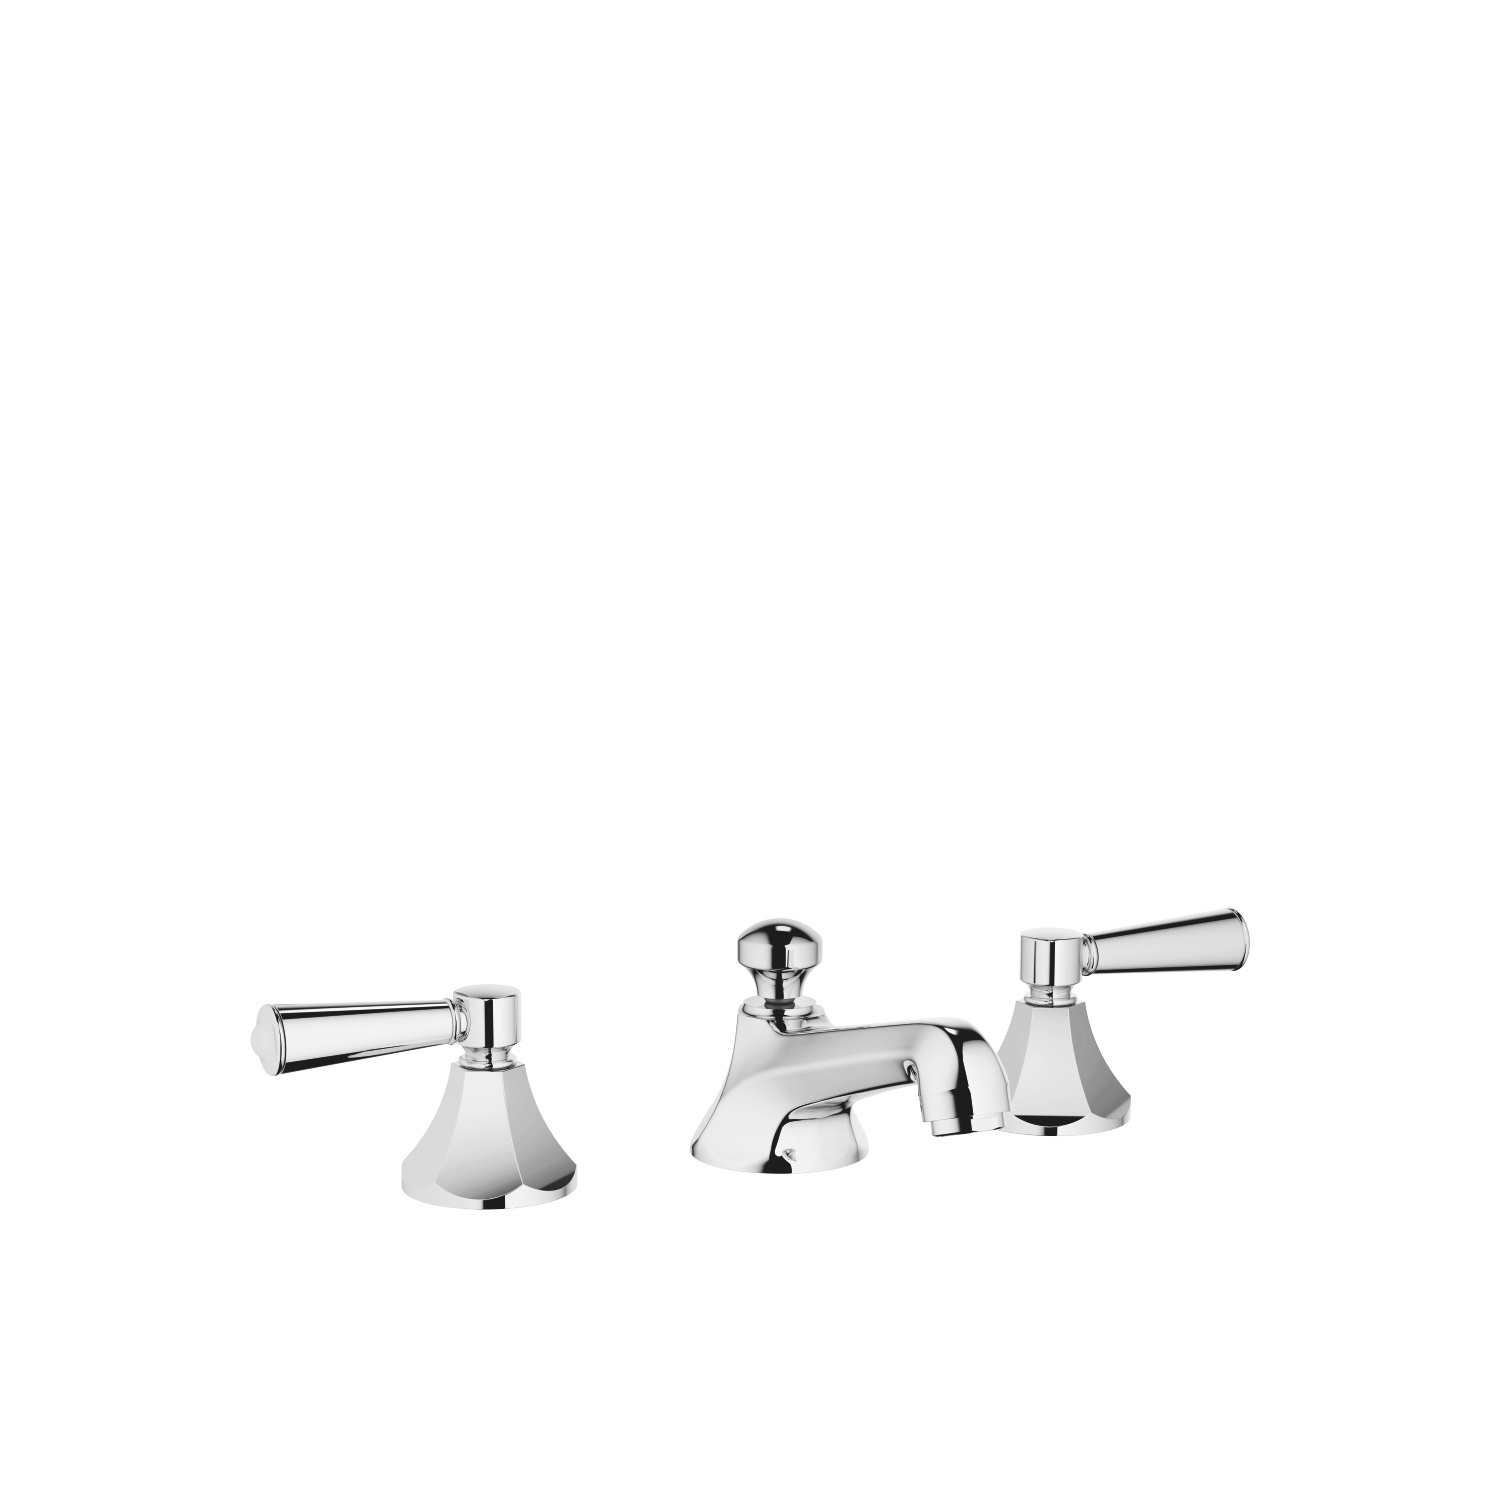 Three-hole basin mixer with pop-up waste - polished chrome - 20 700 370-00 0010